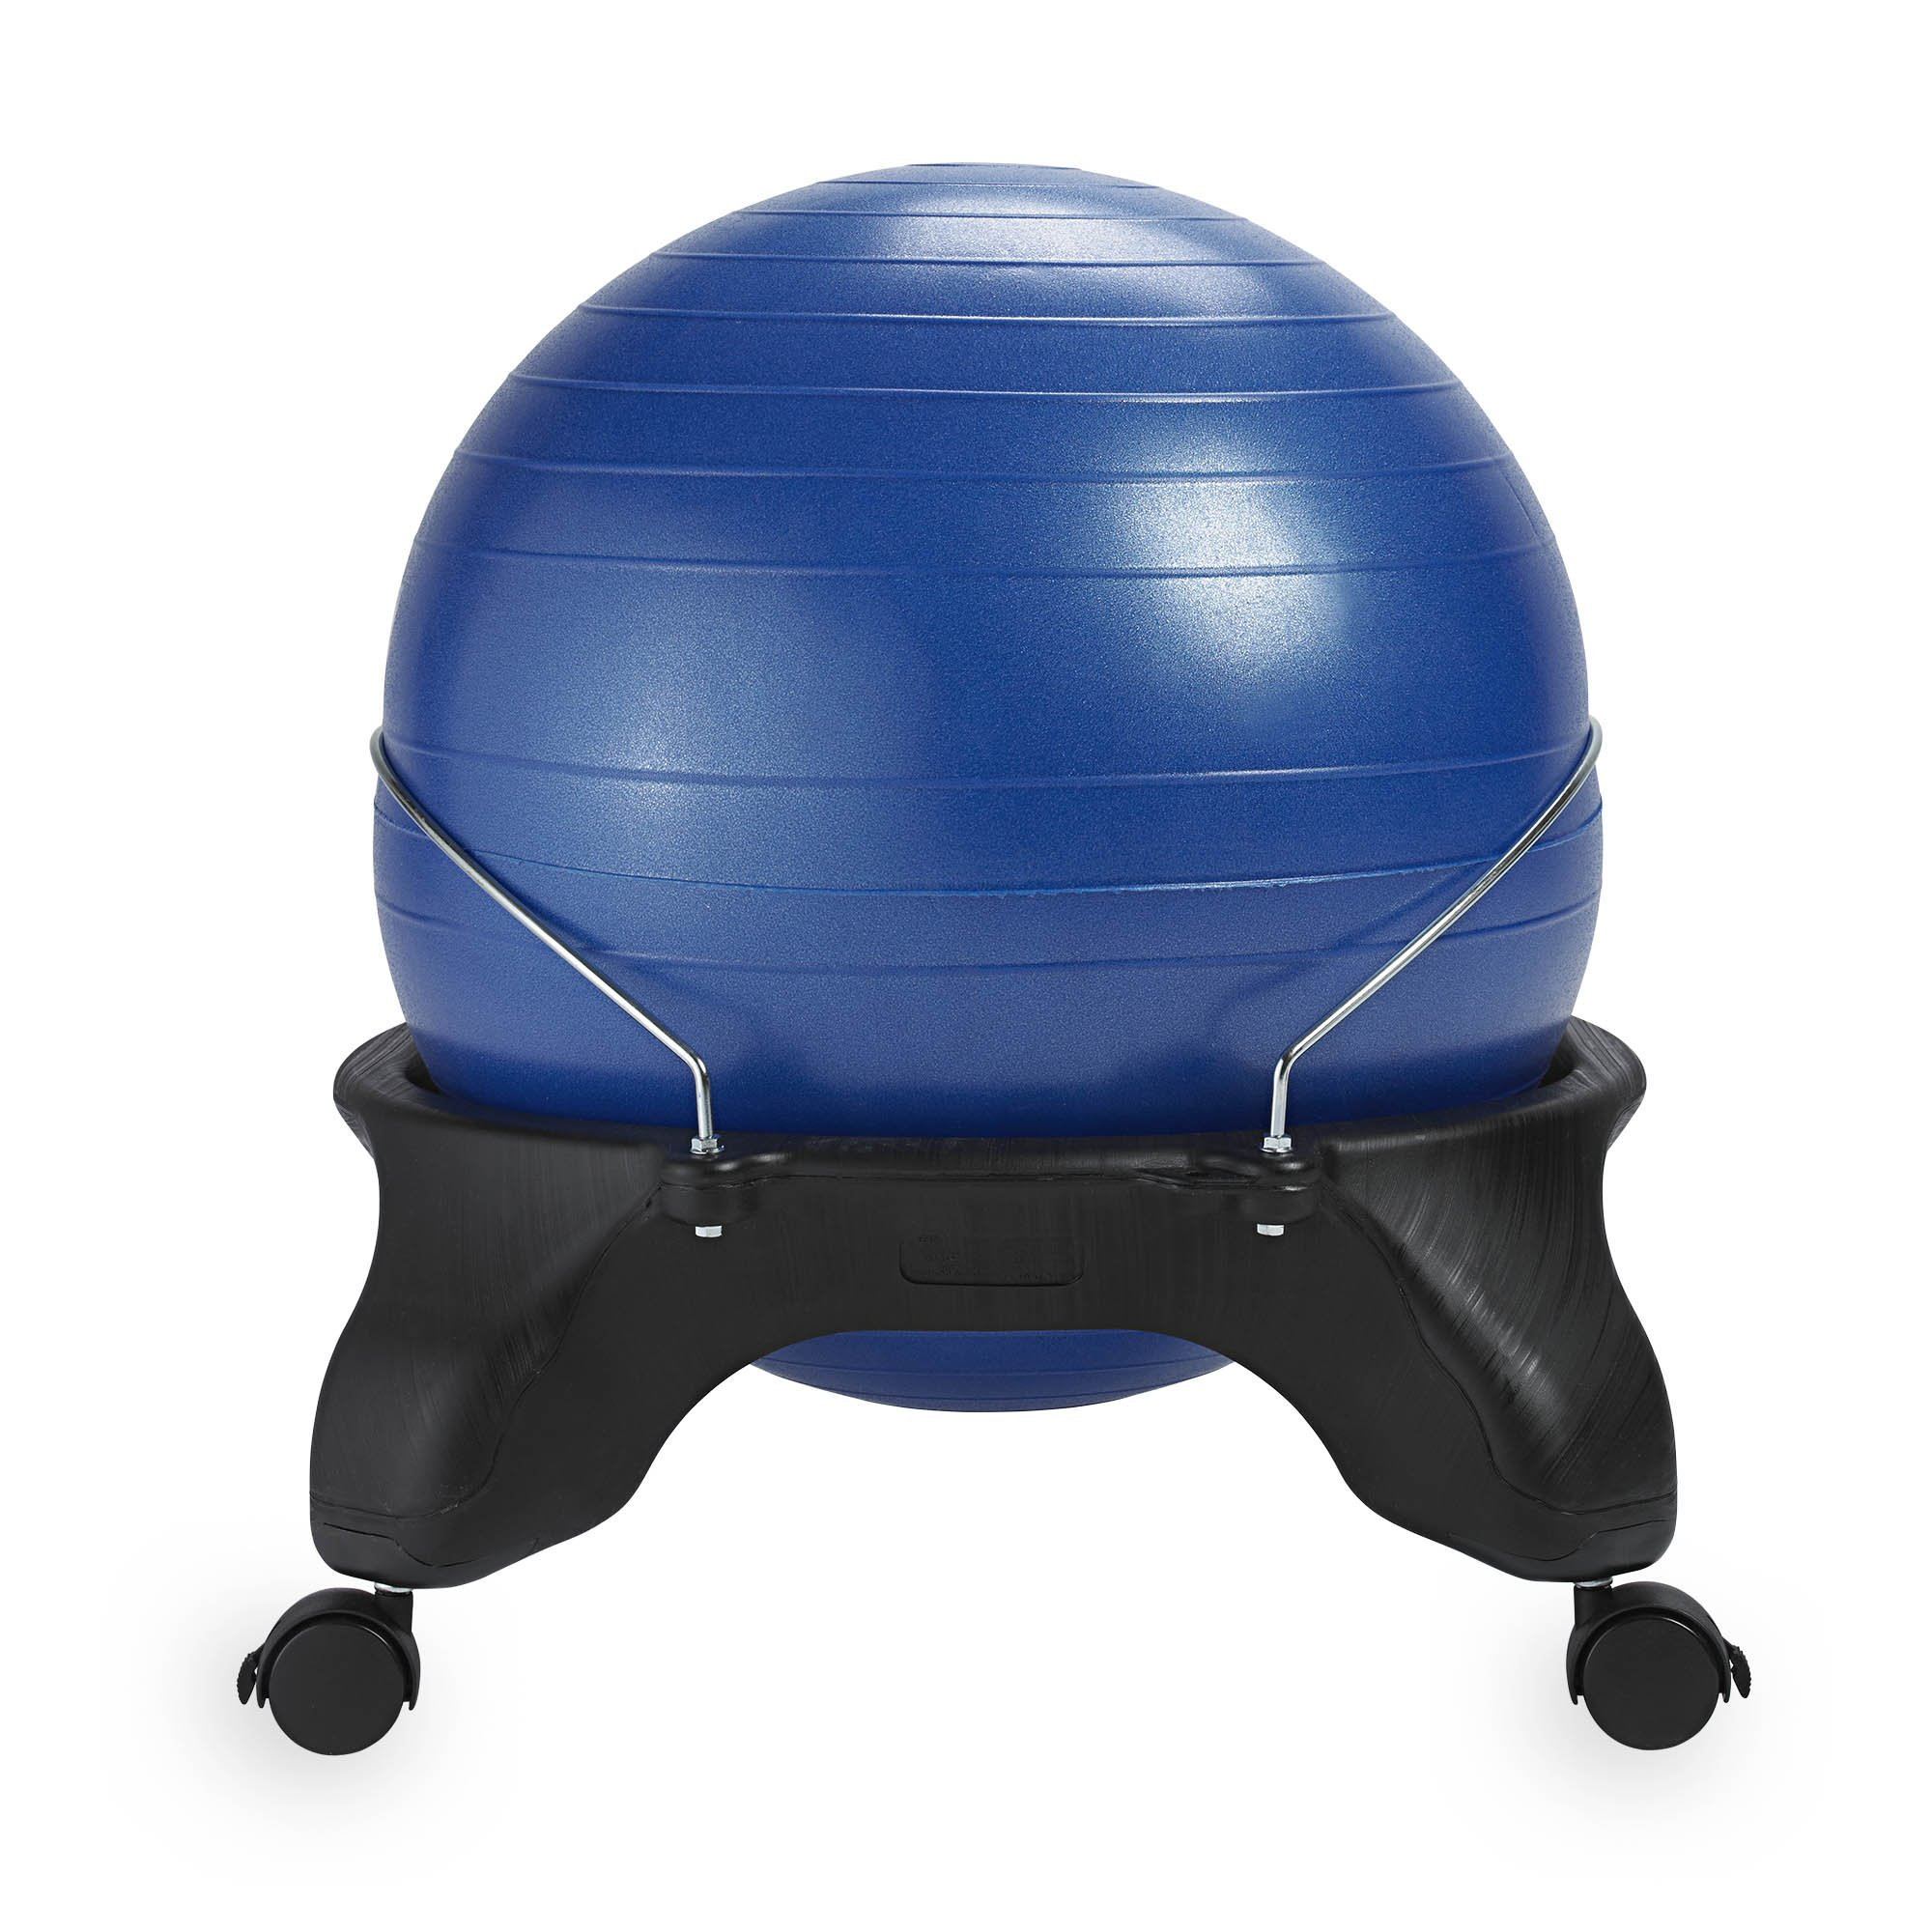 Stability Ball Office Chair Size: Gaiam Classic Backless Balance Ball Chair